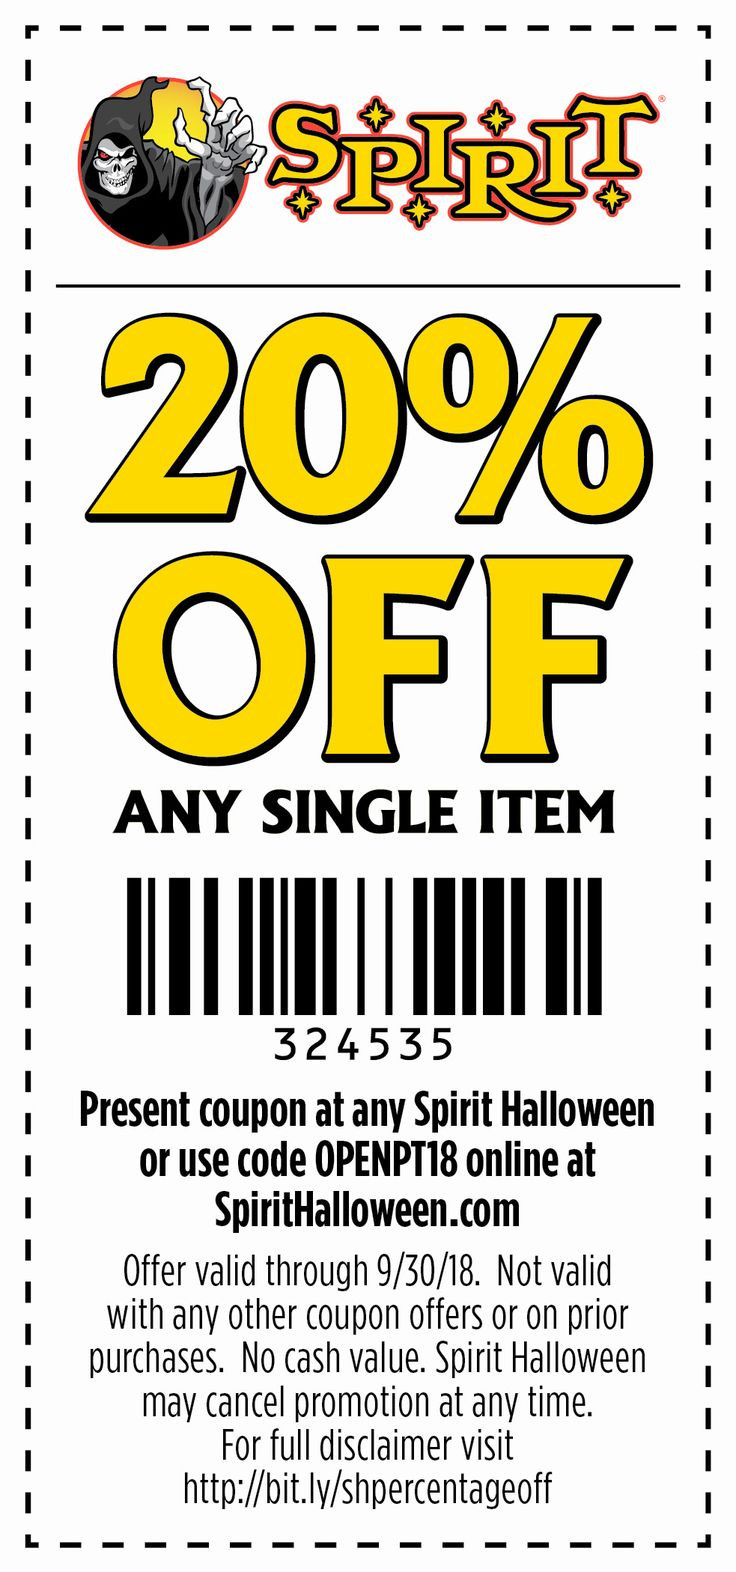 SpiritHalloween stores are now opening! Use this coupon